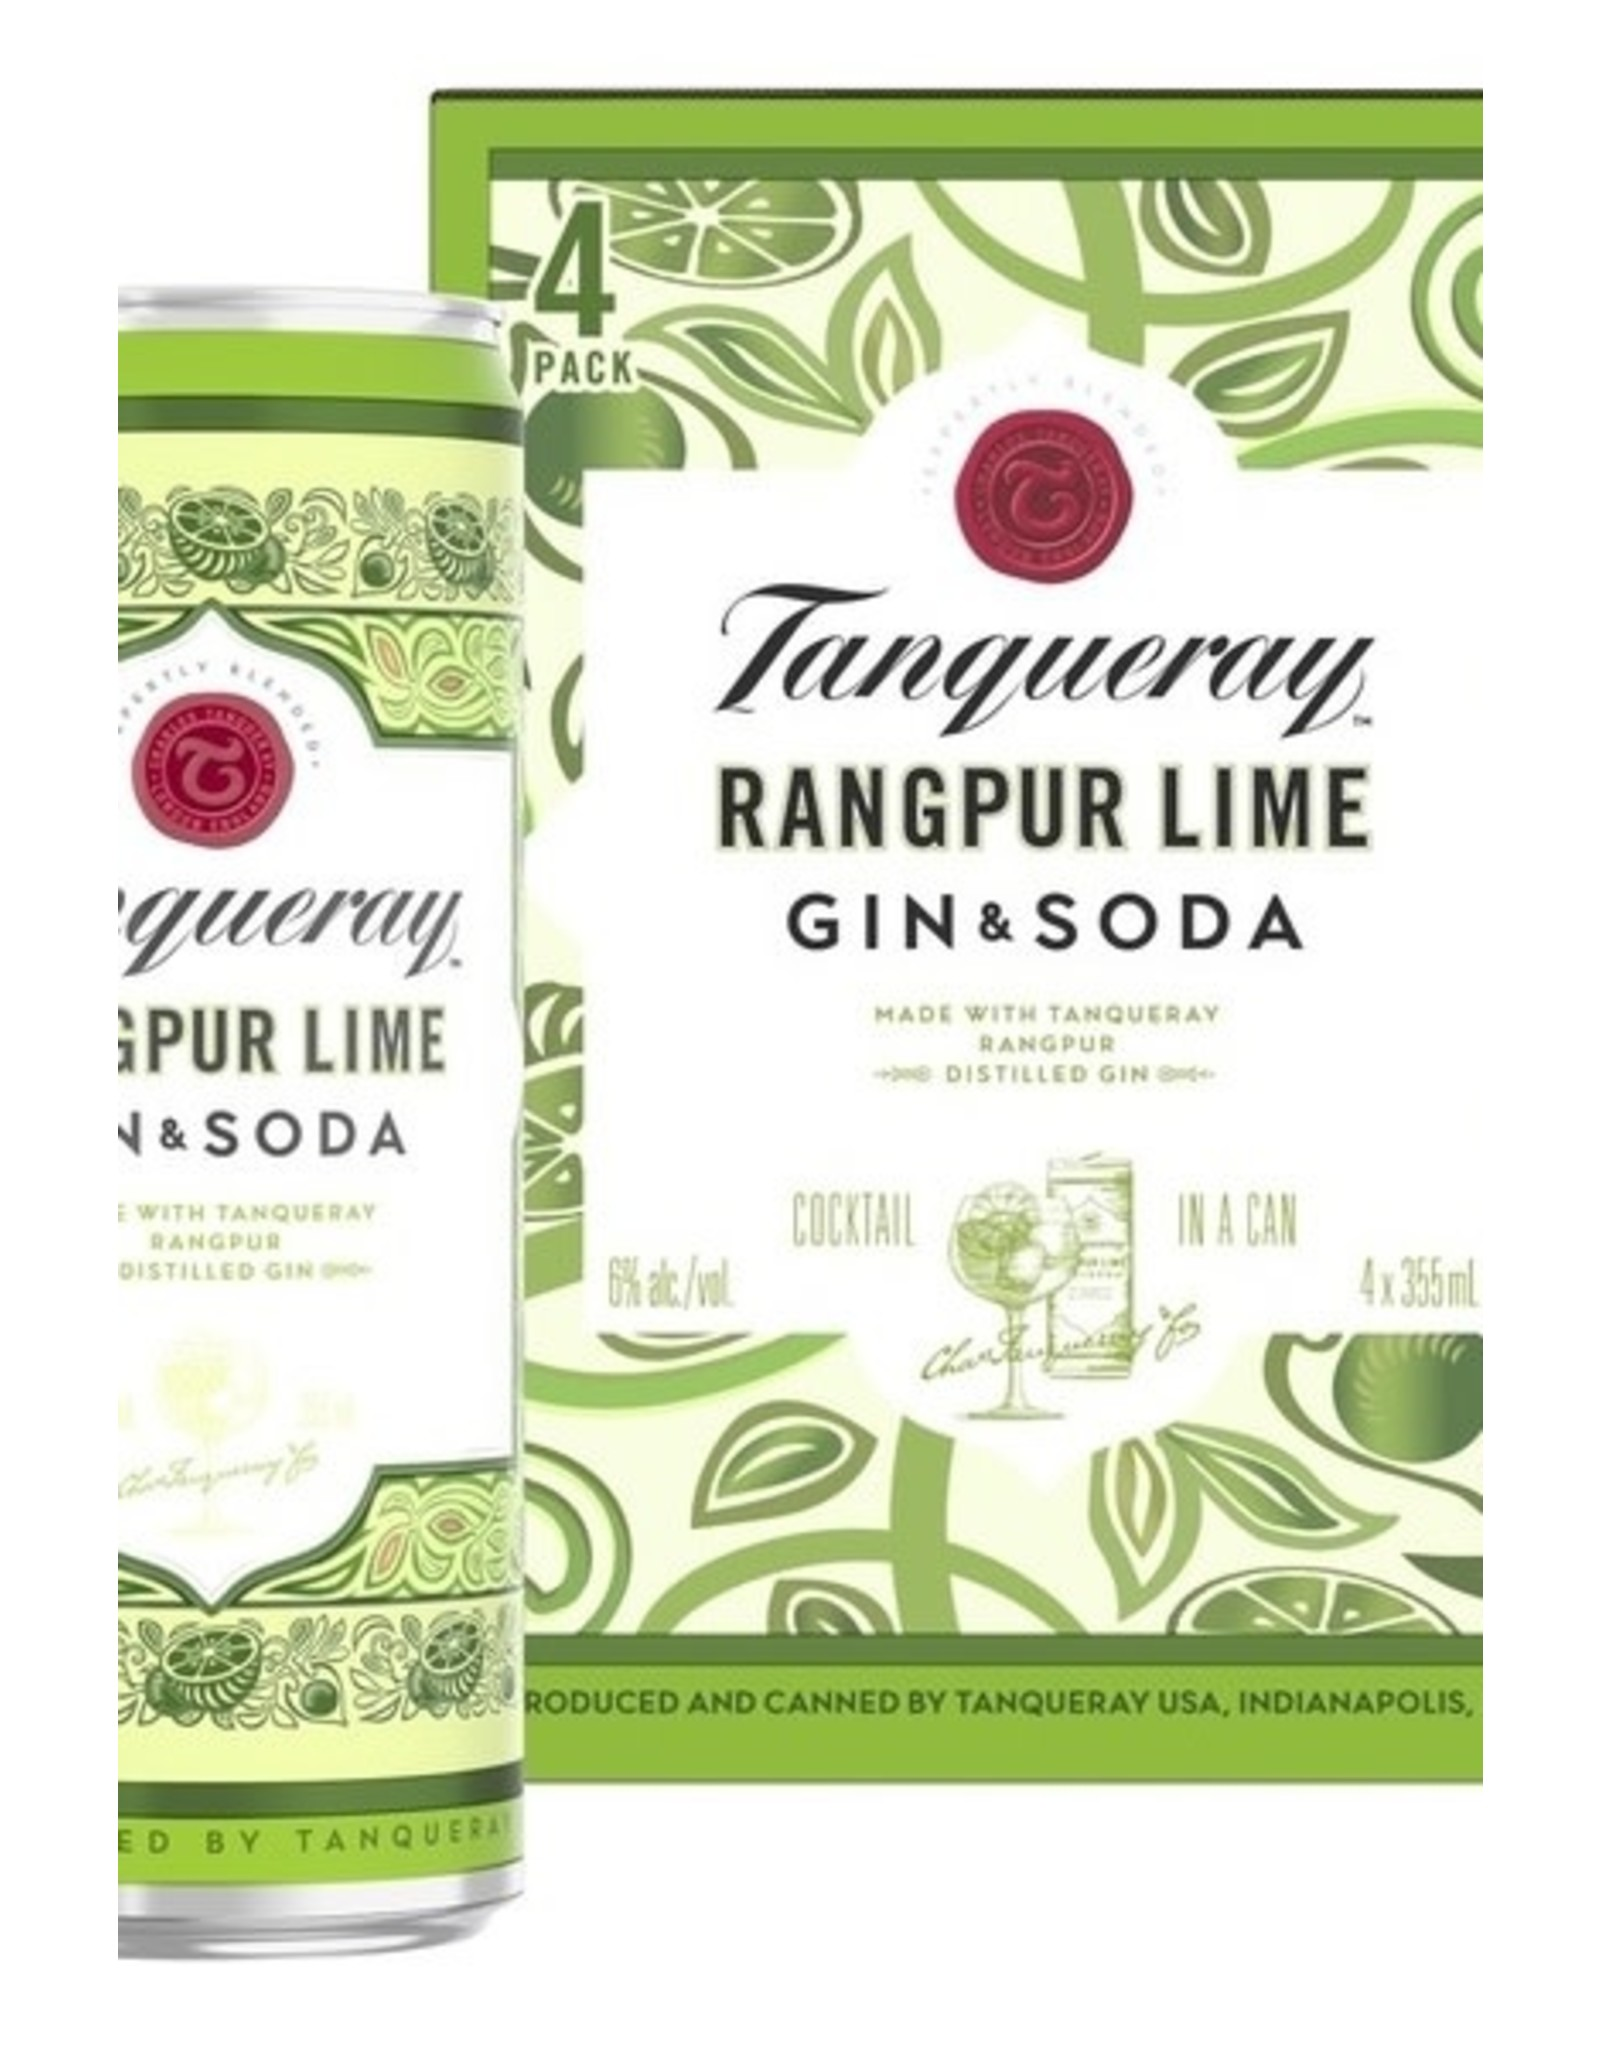 Tanqueray Rangpur Lime Gin & Soda Single